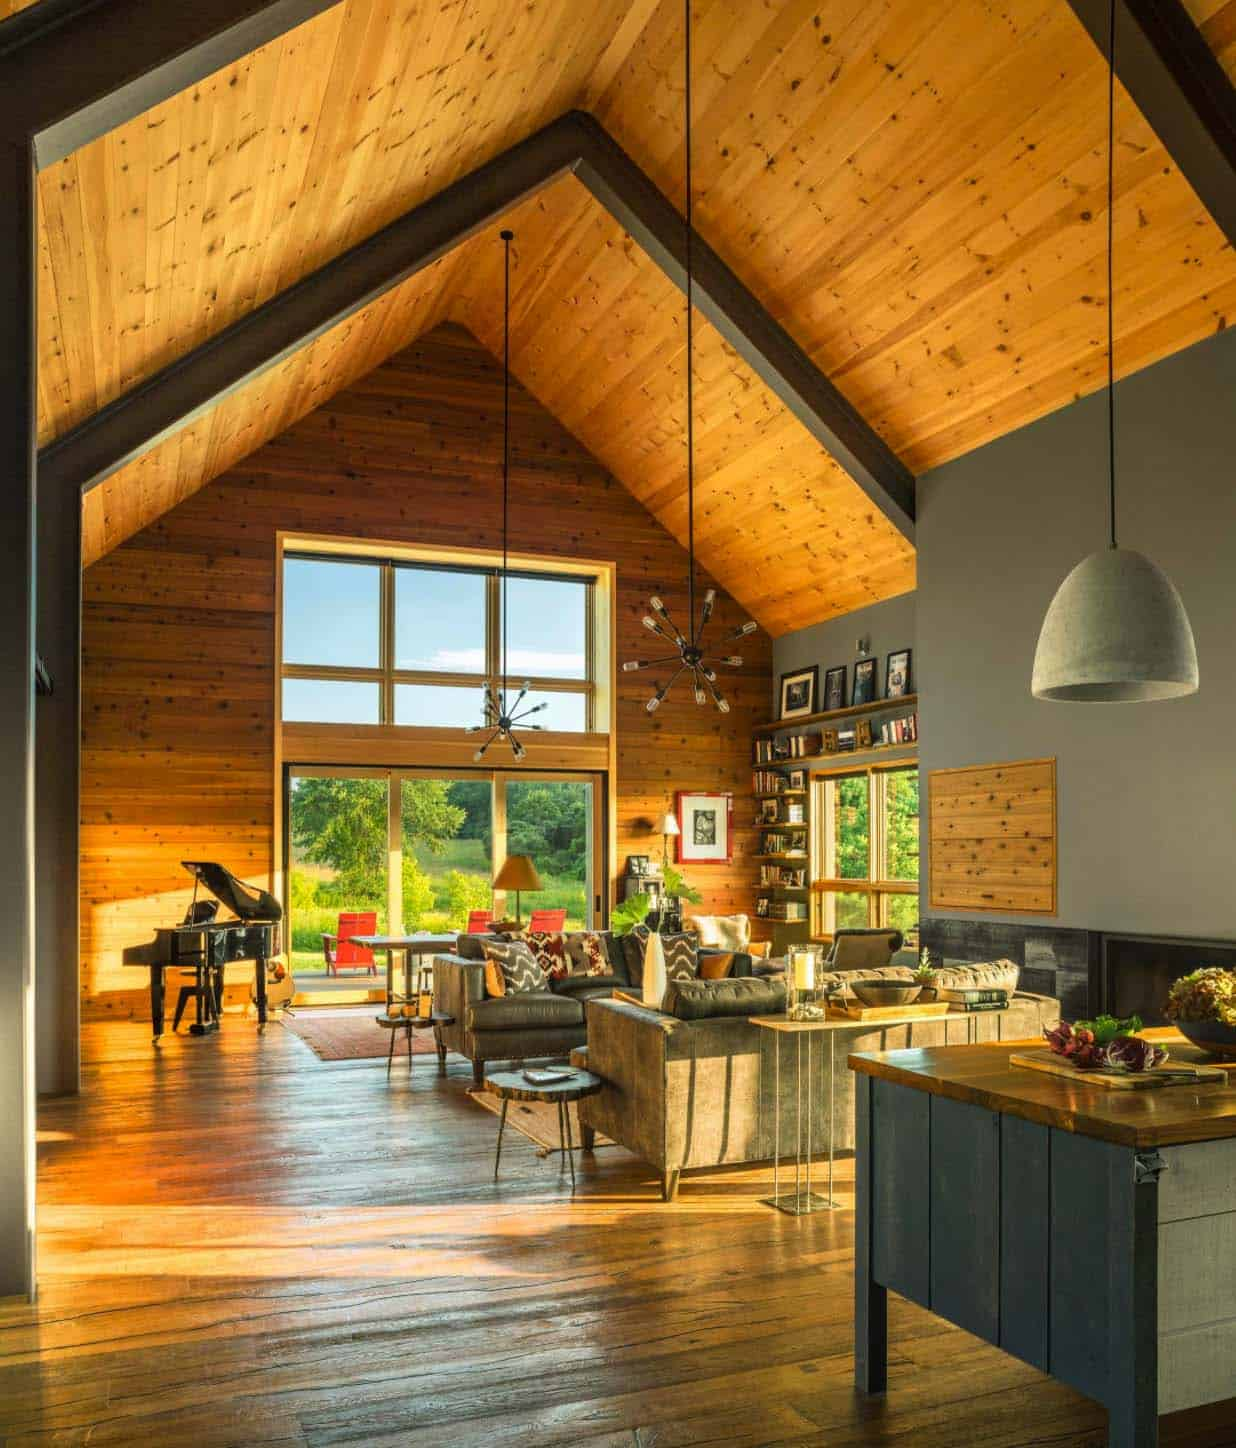 Modern Contemporary Home Interior Design: Small And Cozy Modern Barn House Getaway In Vermont